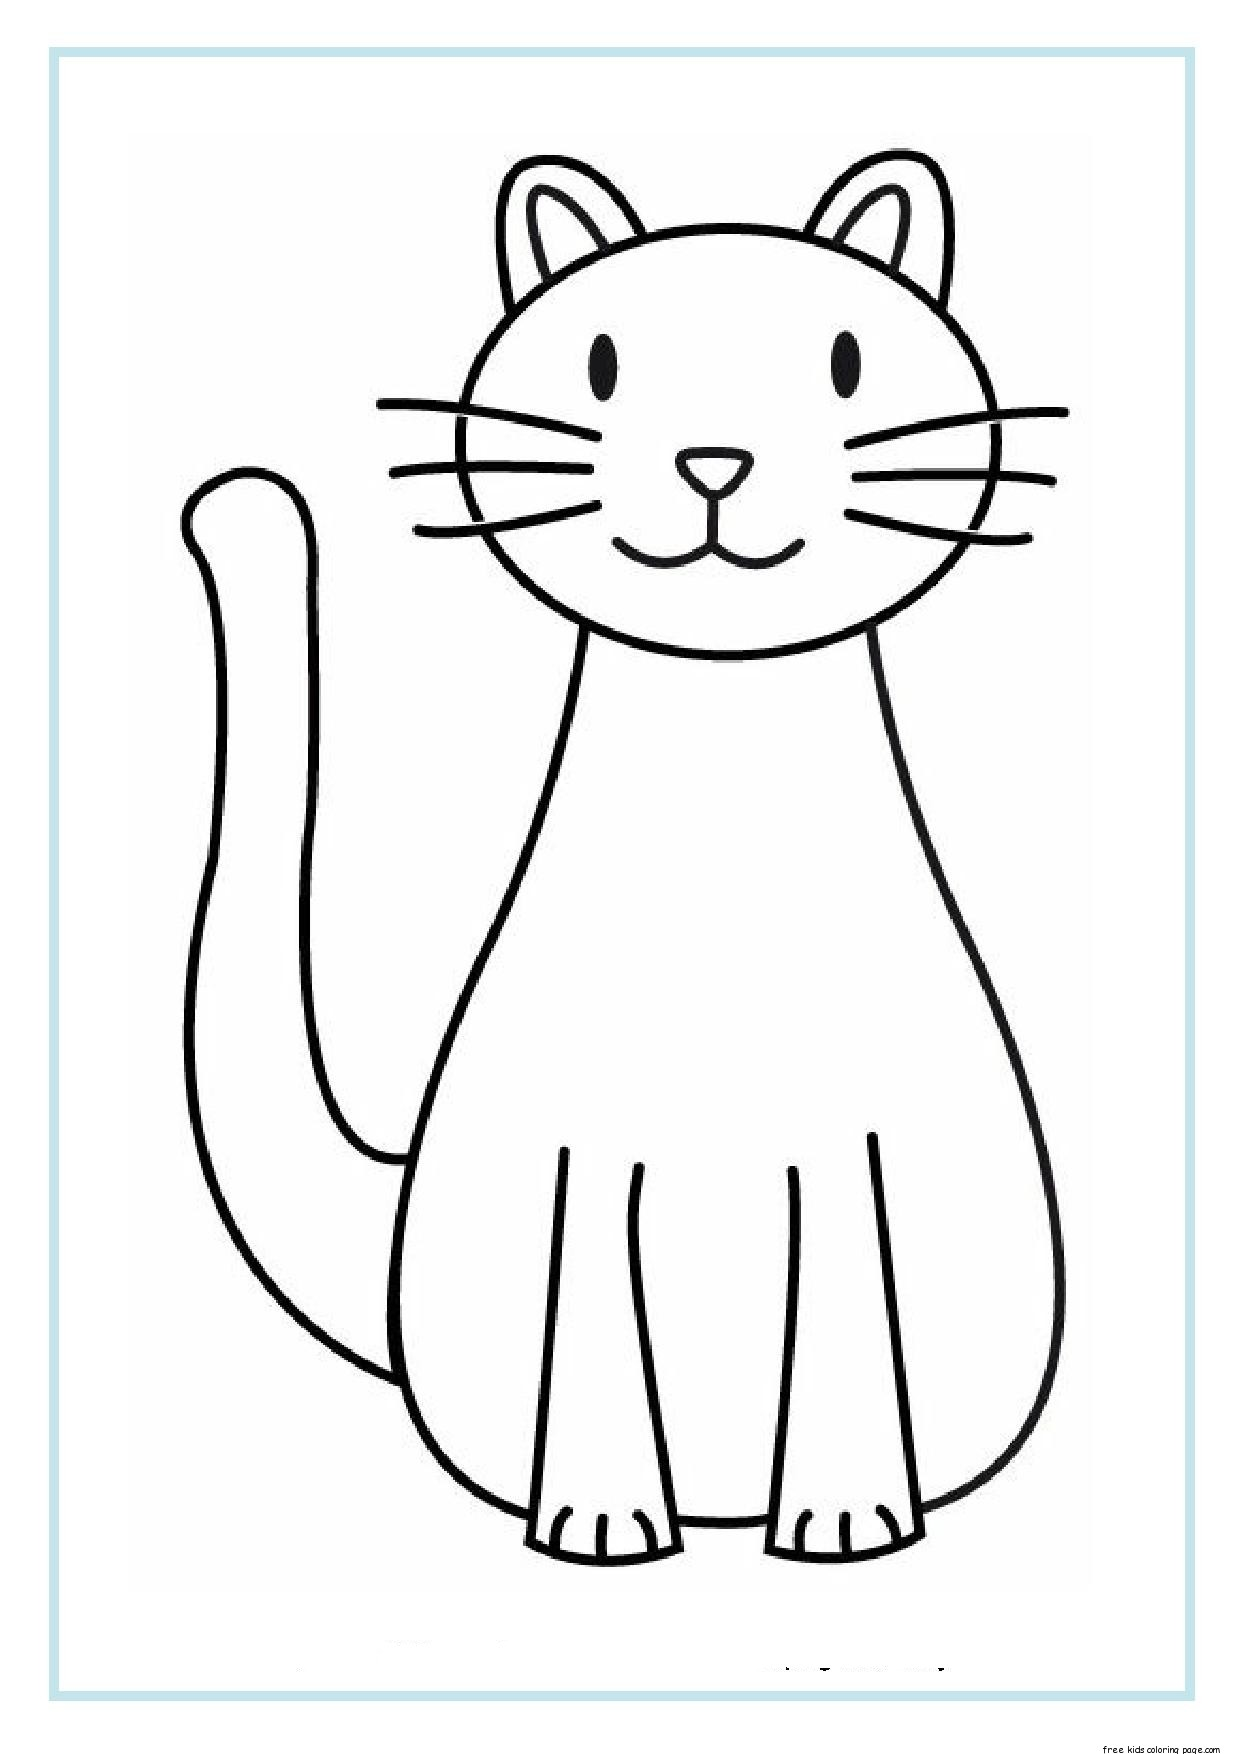 printable cat coloring sheets for kidsfree printable coloring pages for kids